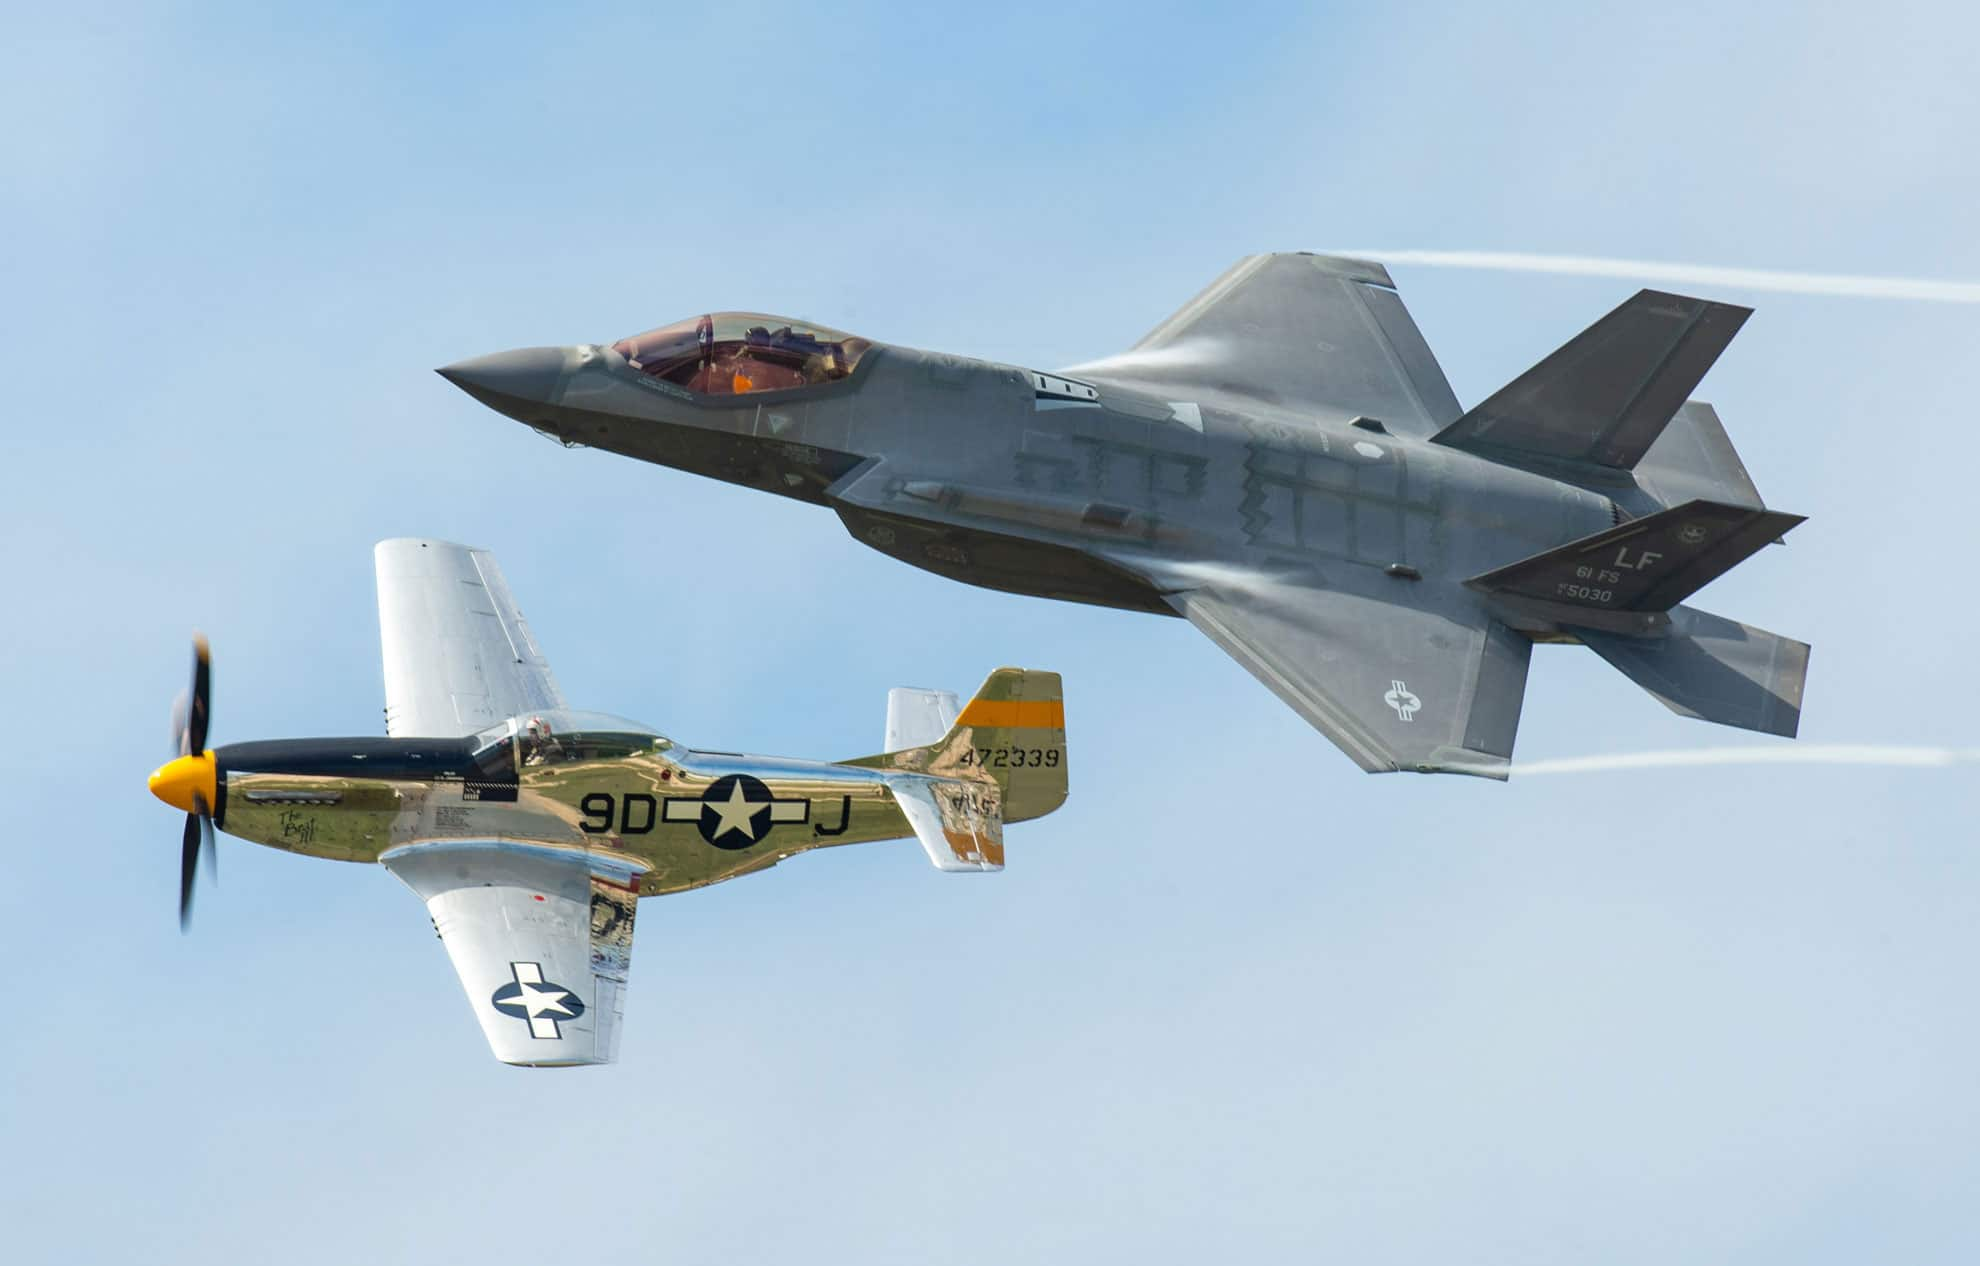 An F-35A Lightning II and P-51 Mustang fly in formation as part of a Heritage Flight display during the Bell Fort Worth Alliance Air Show in Fort Worth, Texas. The Heritage Flight display showcases the progression of our nation's aviation history while representing the past, present, and future of Air Force airpower.